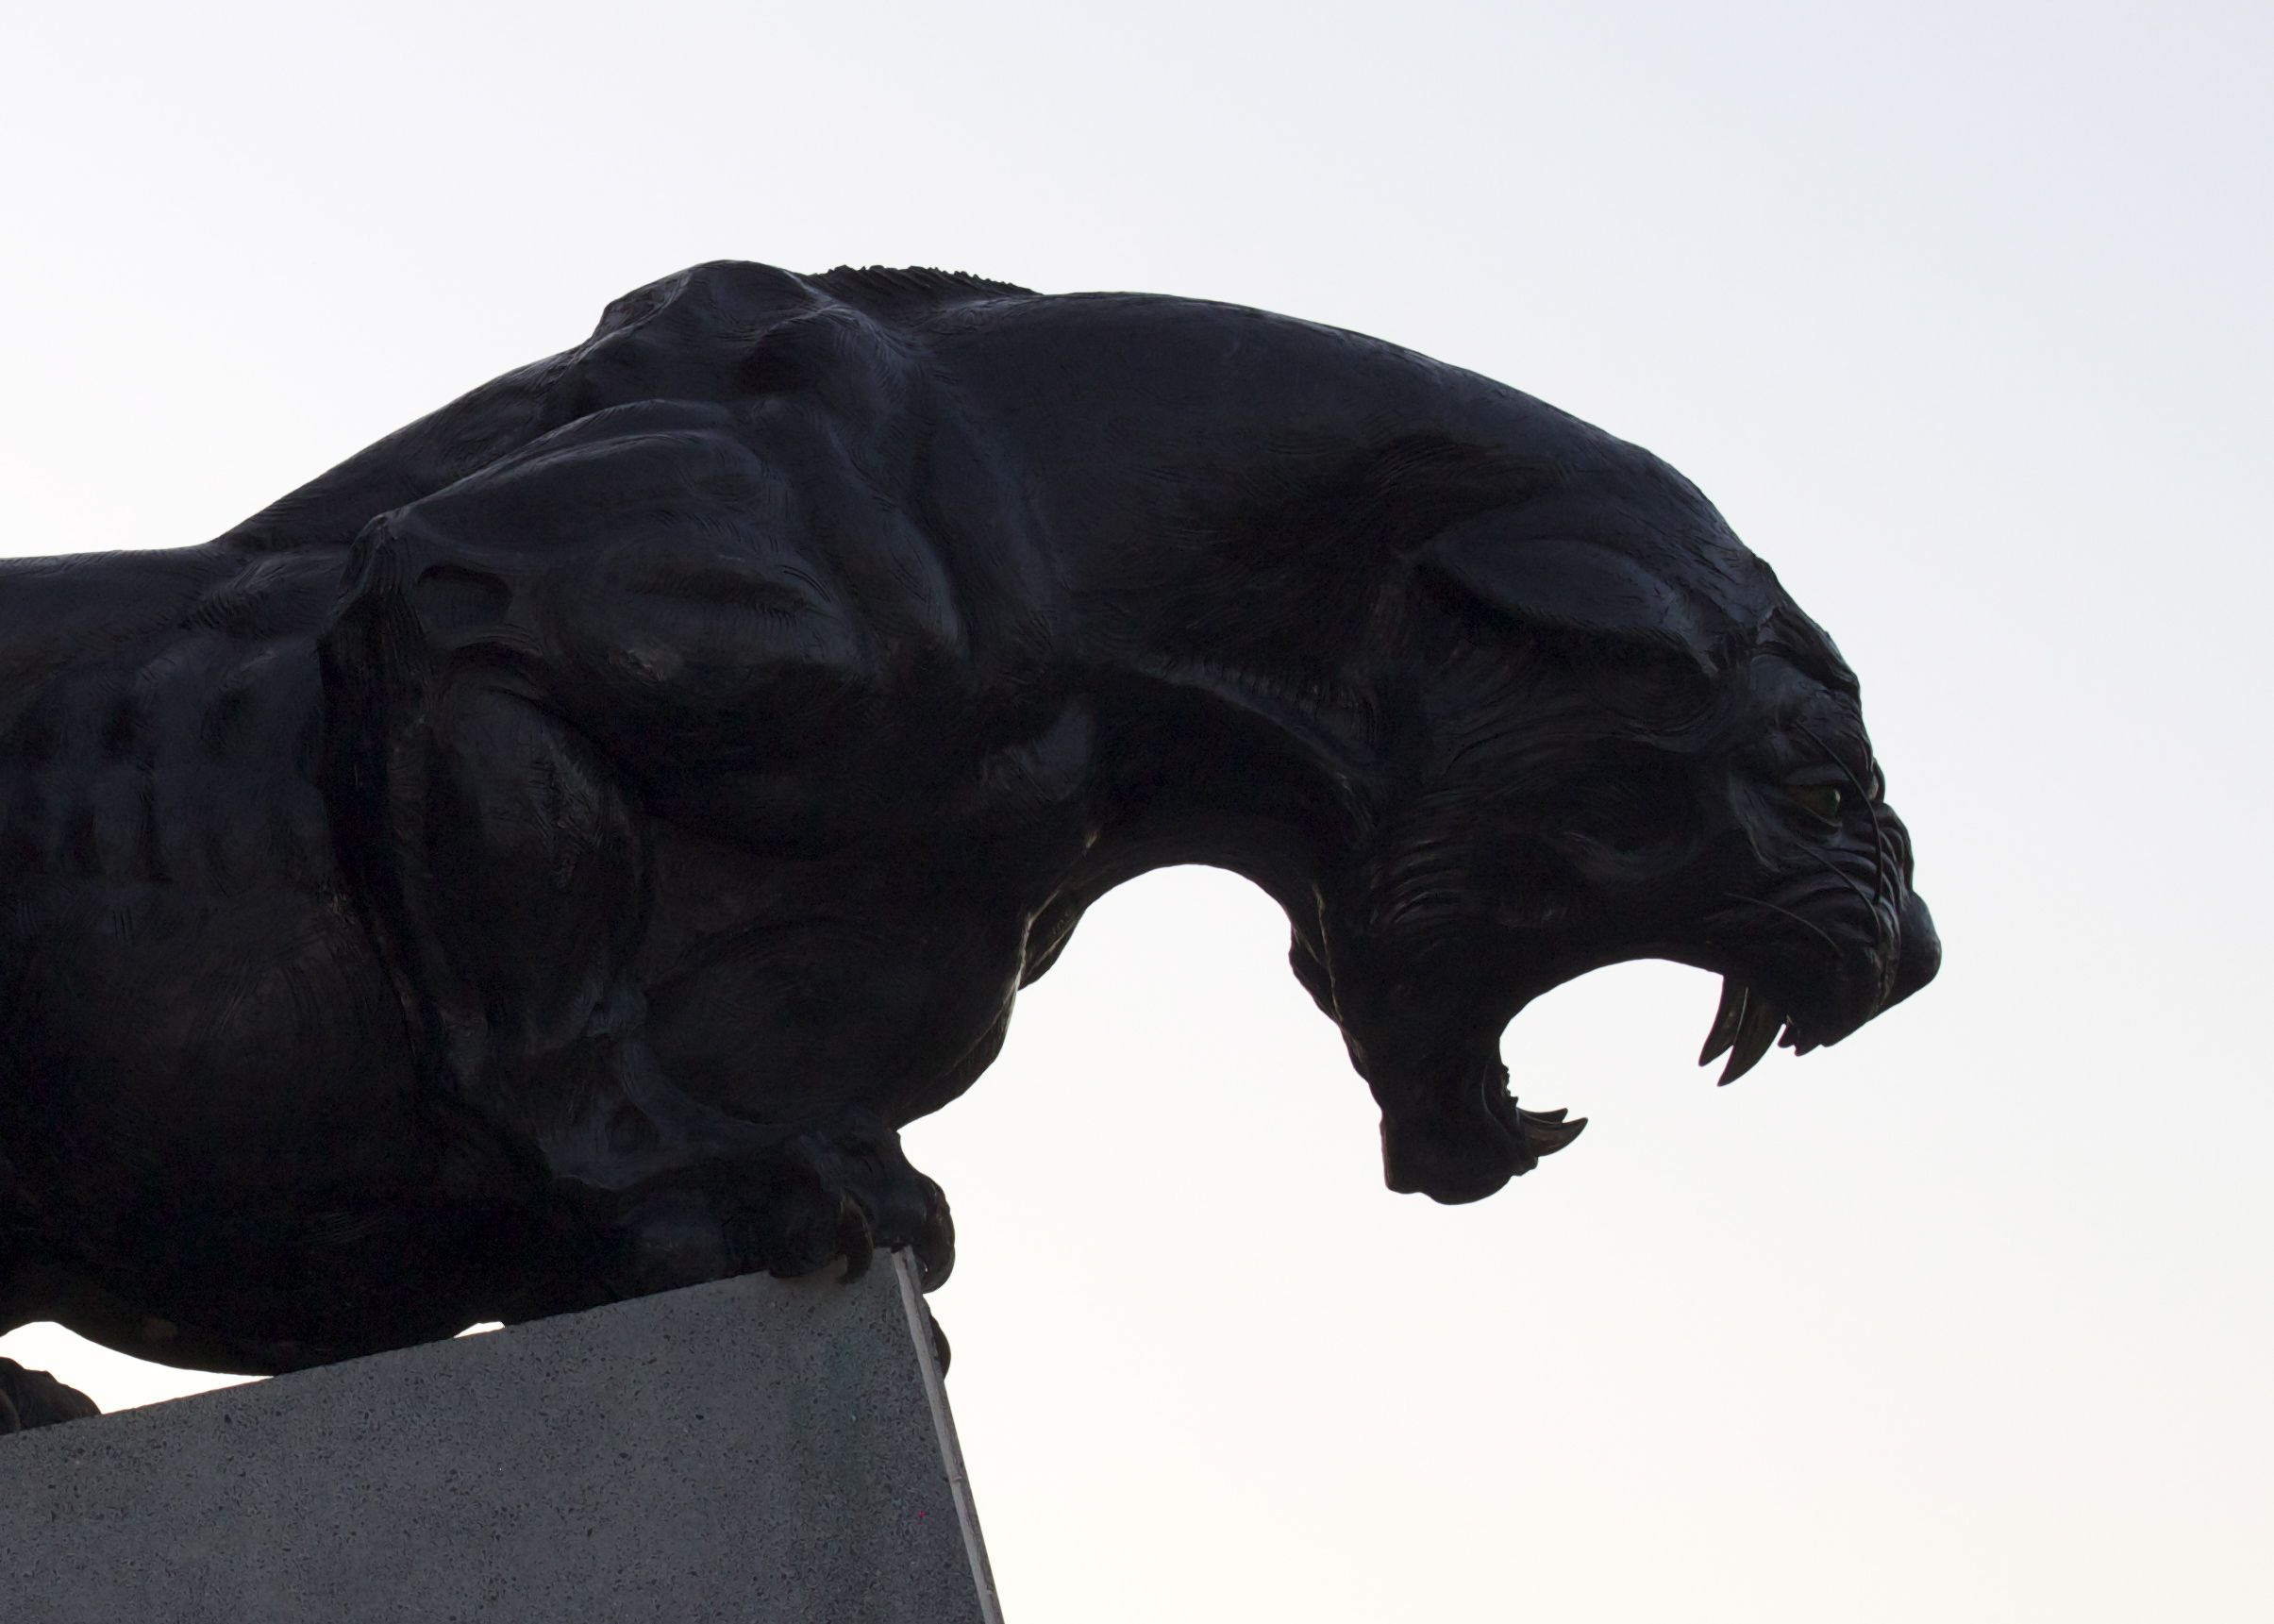 2410x1721 Silhouette Of One Of The Panthers Standing Guard